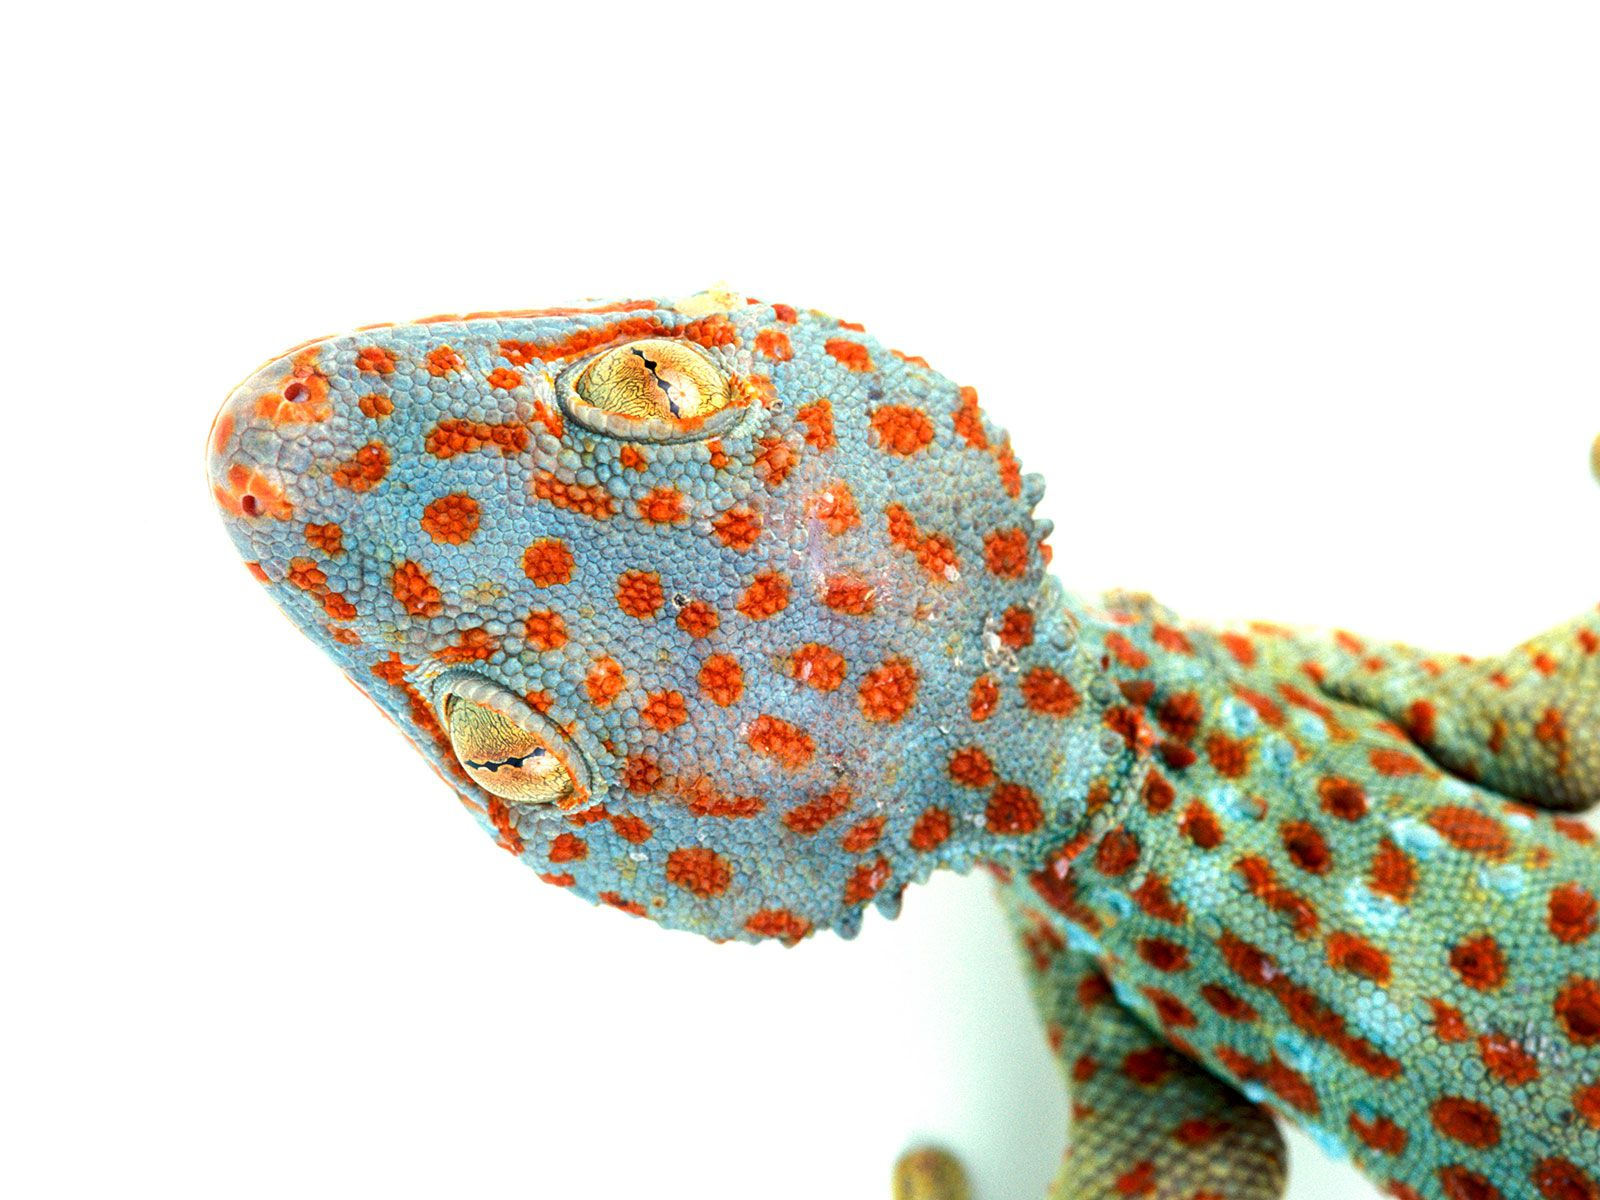 A Quarter of All Reptile Species, Many of Them Endangered, Are Sold Online